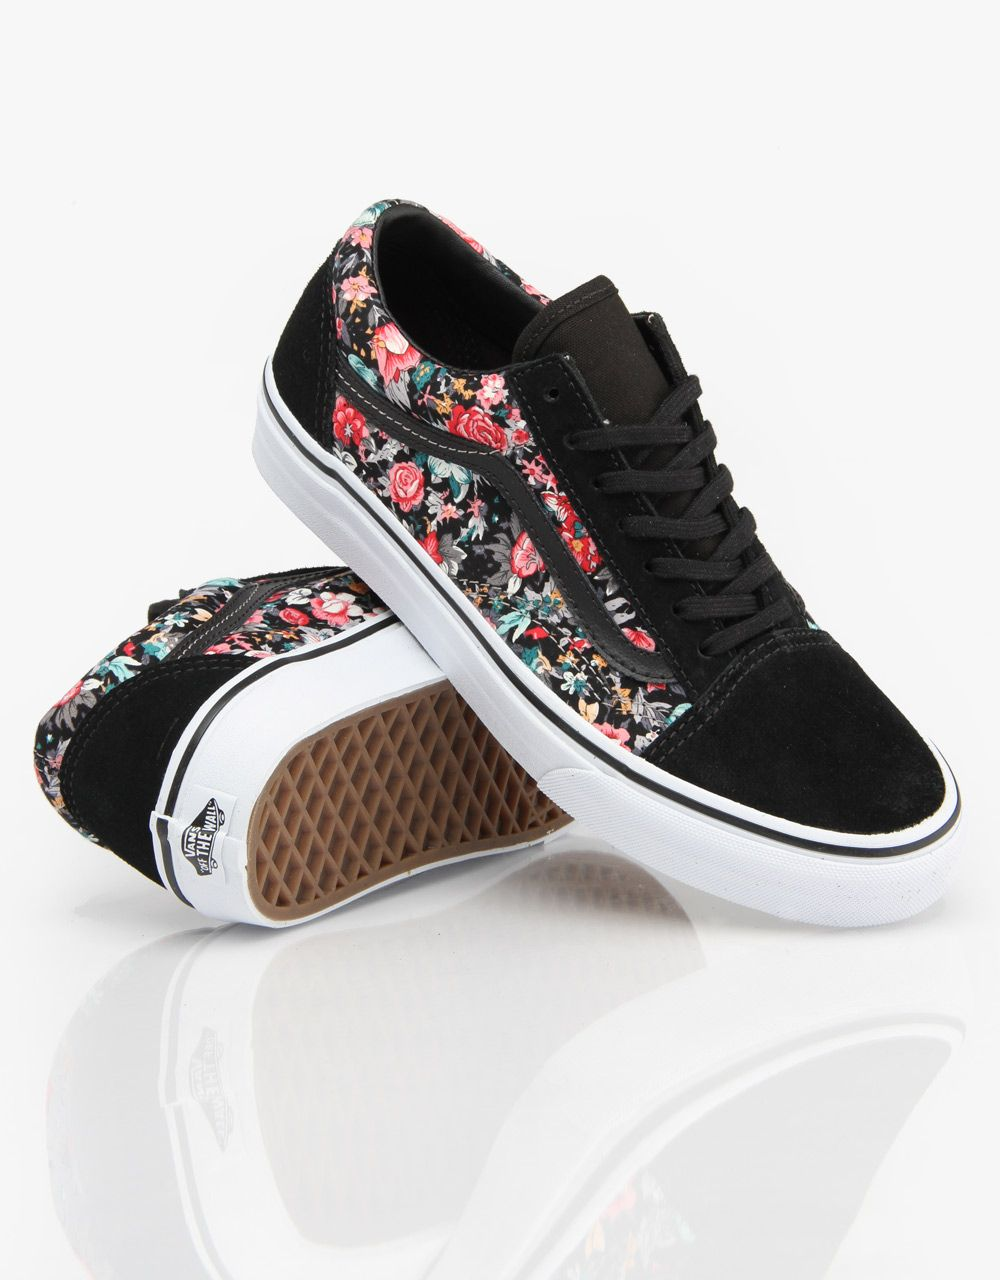 46770f6991 Vans Old Skool Girls Skate Shoes - Multi Floral Black True White -  RouteOne.co.uk